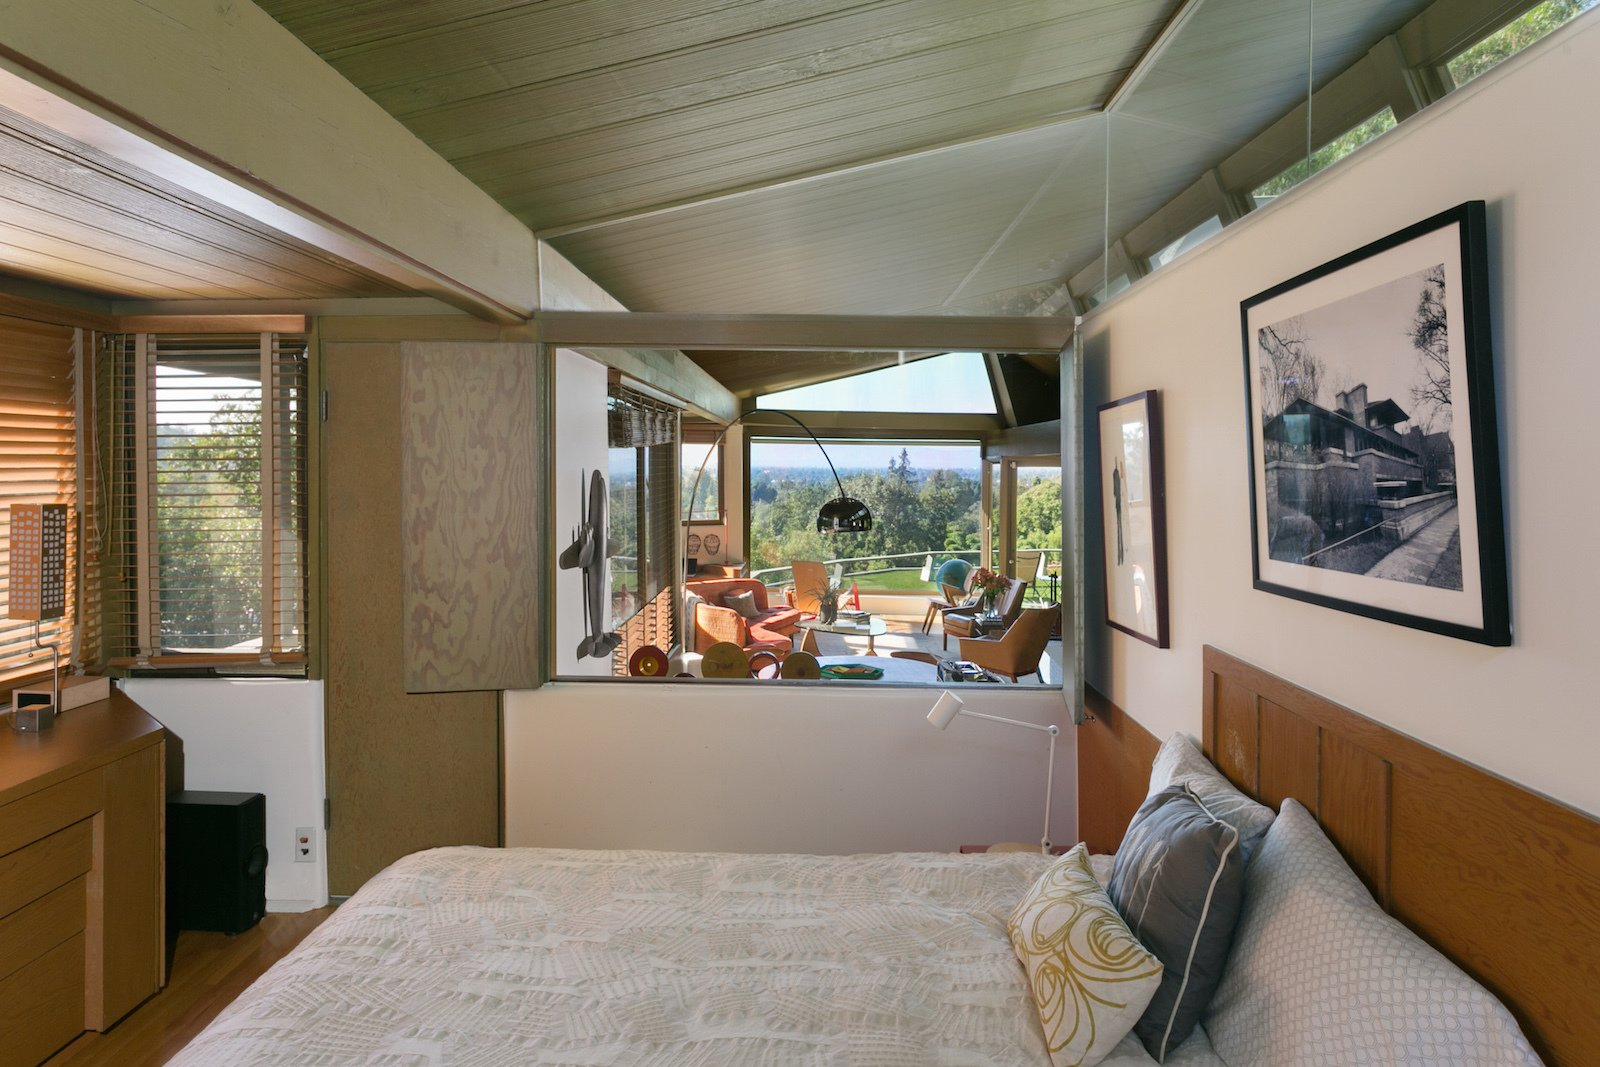 Bedroom, Bed, Night Stands, Table Lighting, and Medium Hardwood Floor  Photo 10 of 17 in A Midcentury Schindler Gem With a Writer's Studio Asks $2.3M